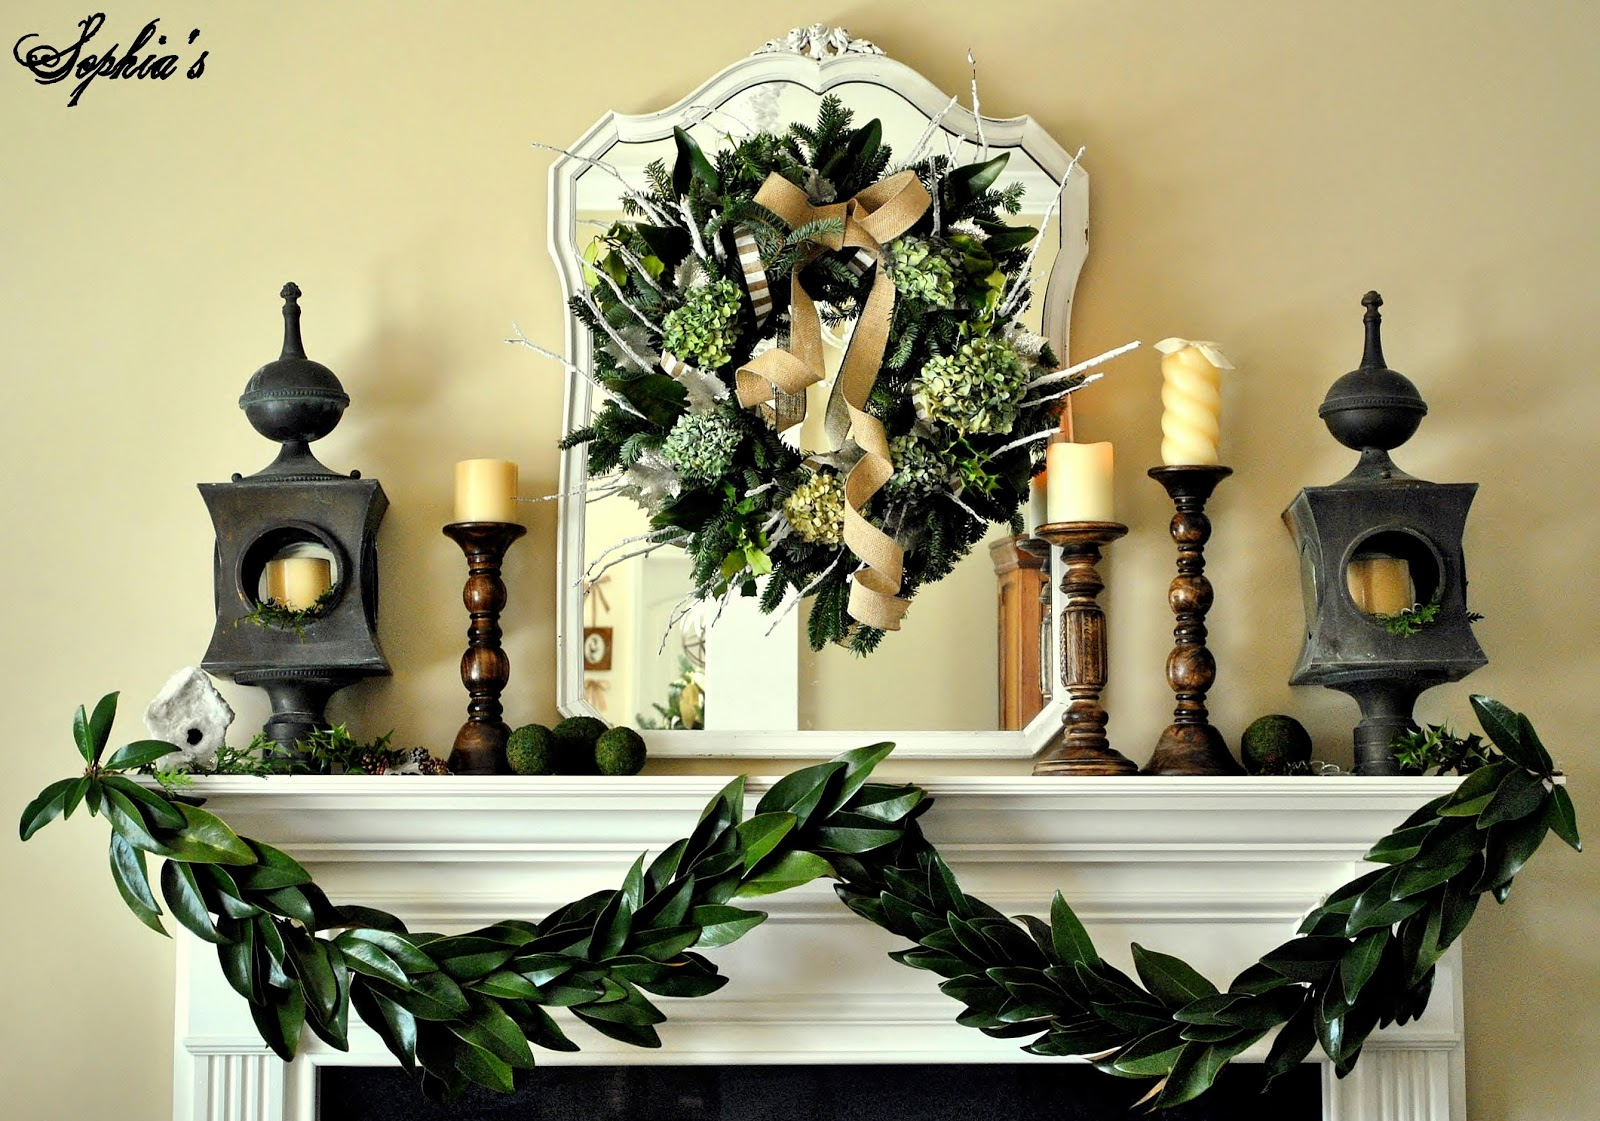 Sophia s  How to Make a Garland with Magnolia Leaves